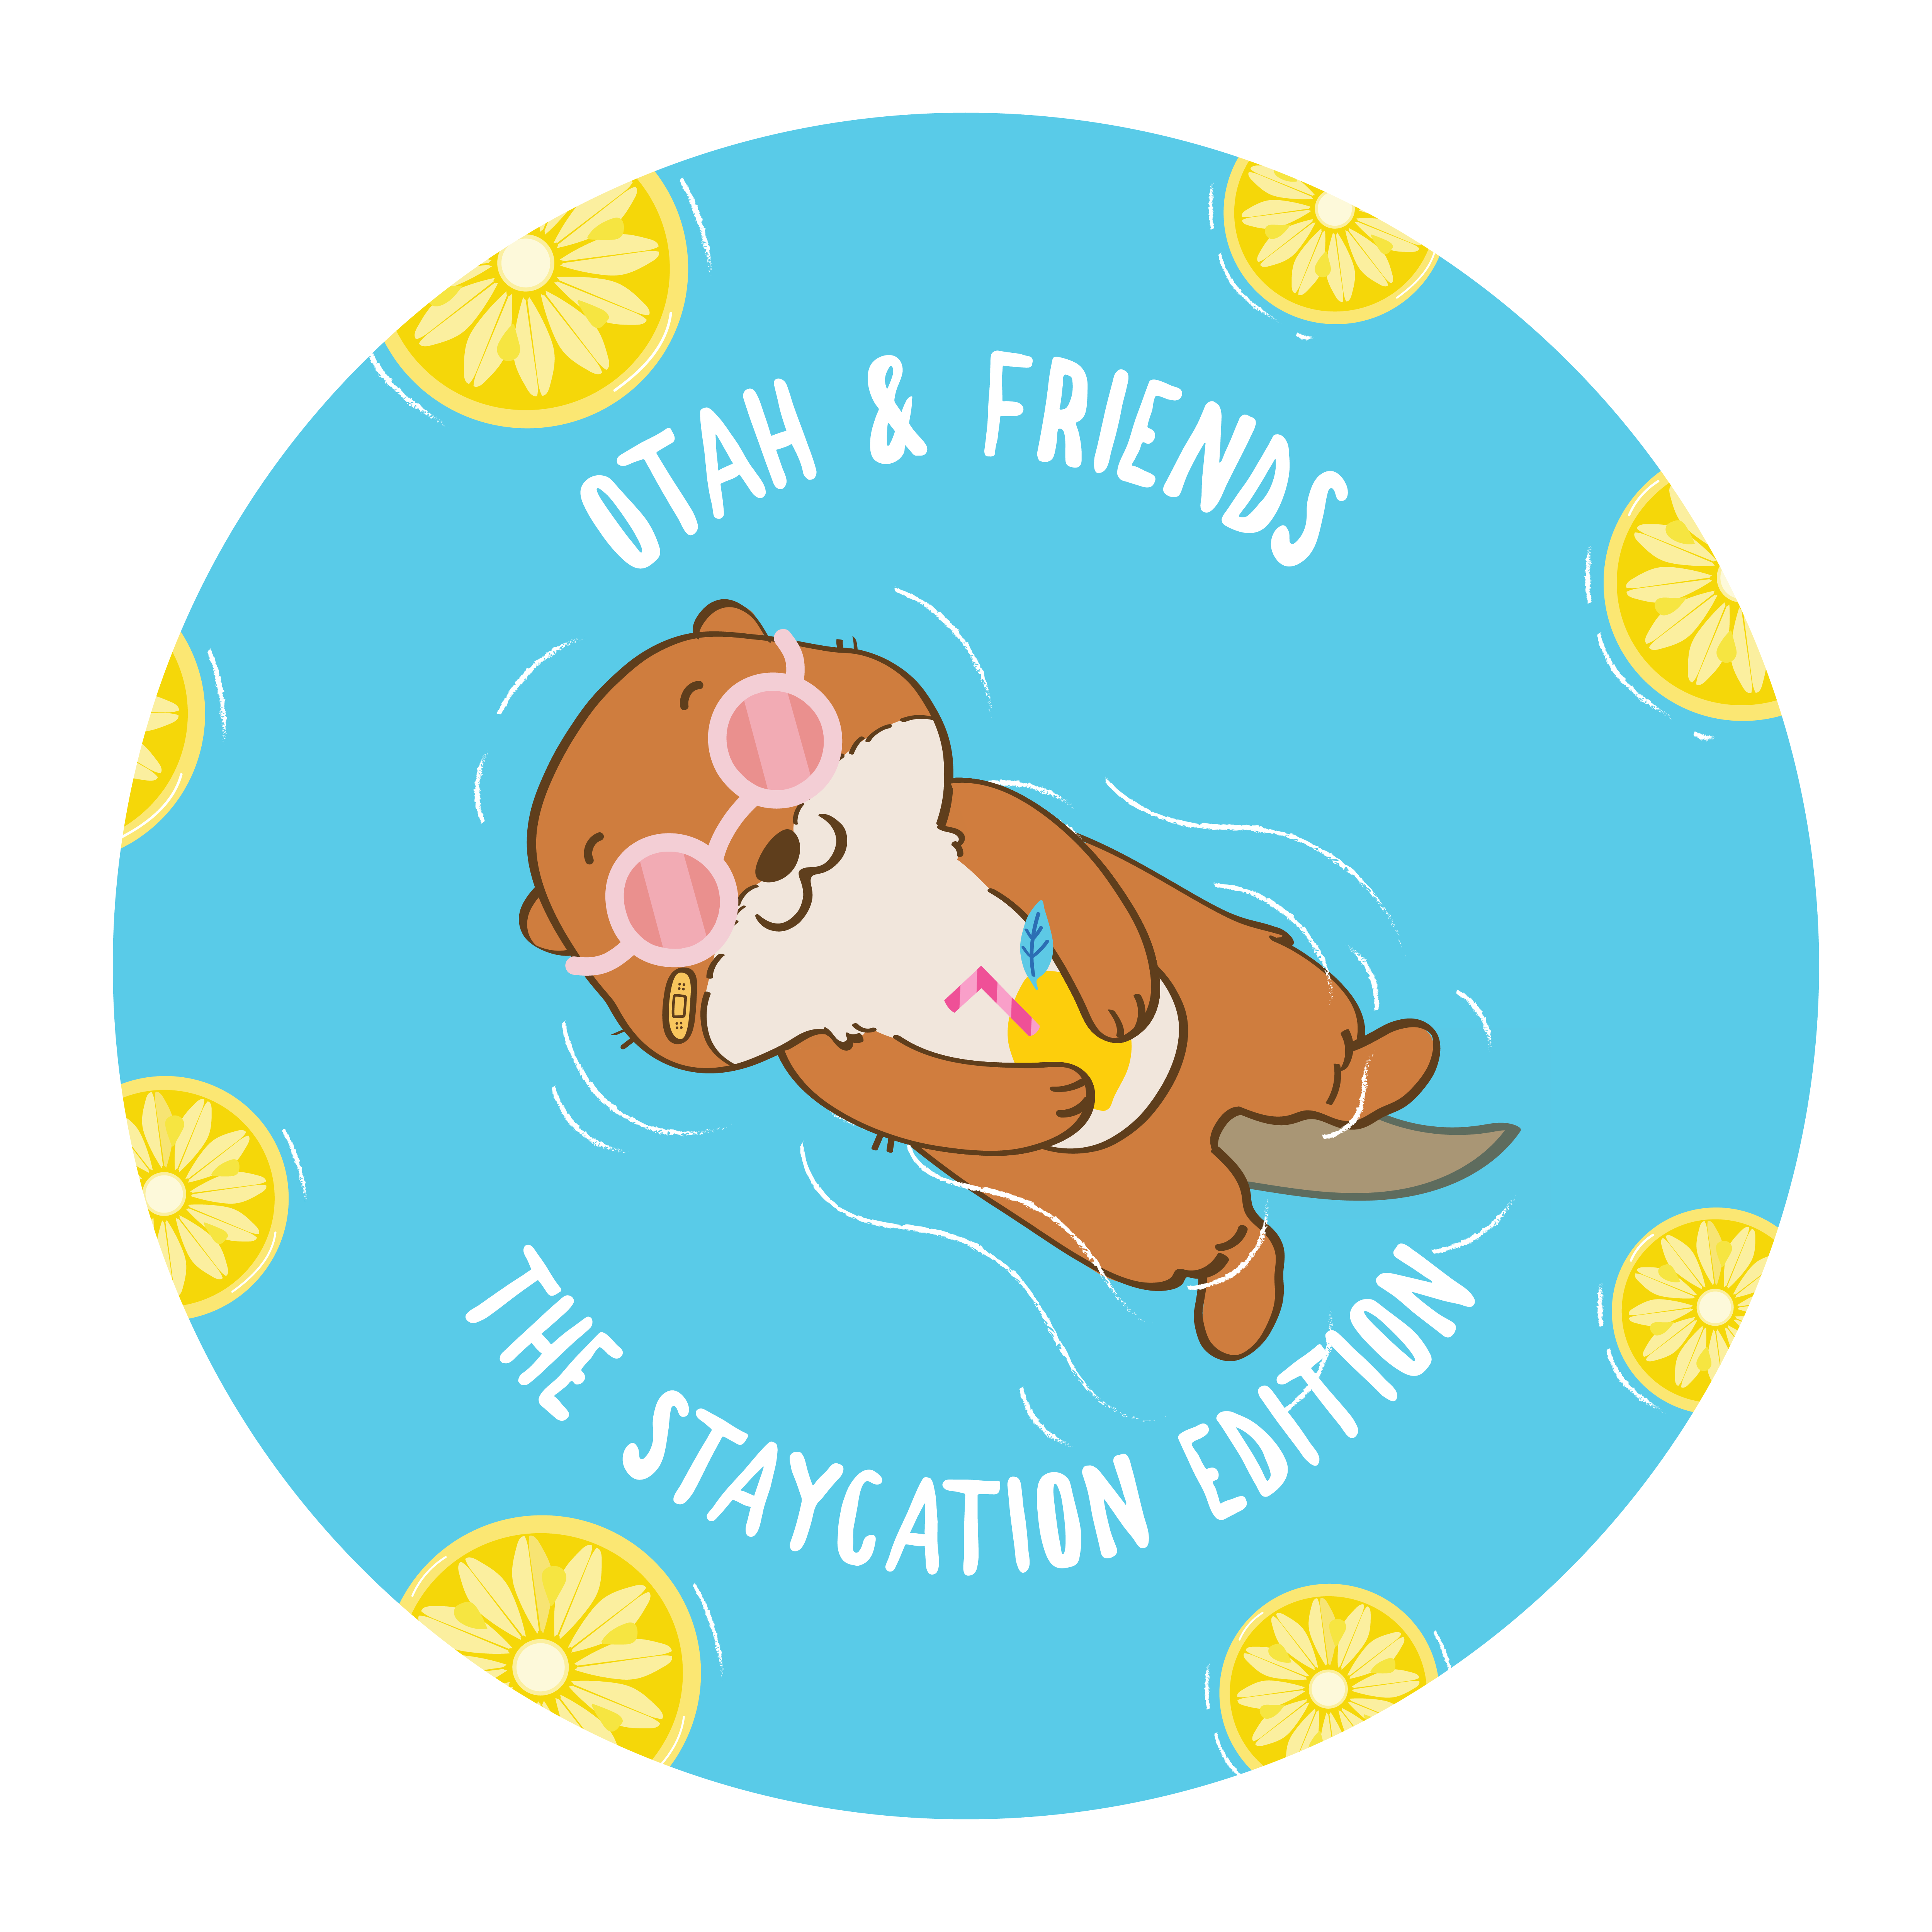 OTAH & FRIENDS x KKDAY: THE STAYCATION EDITION